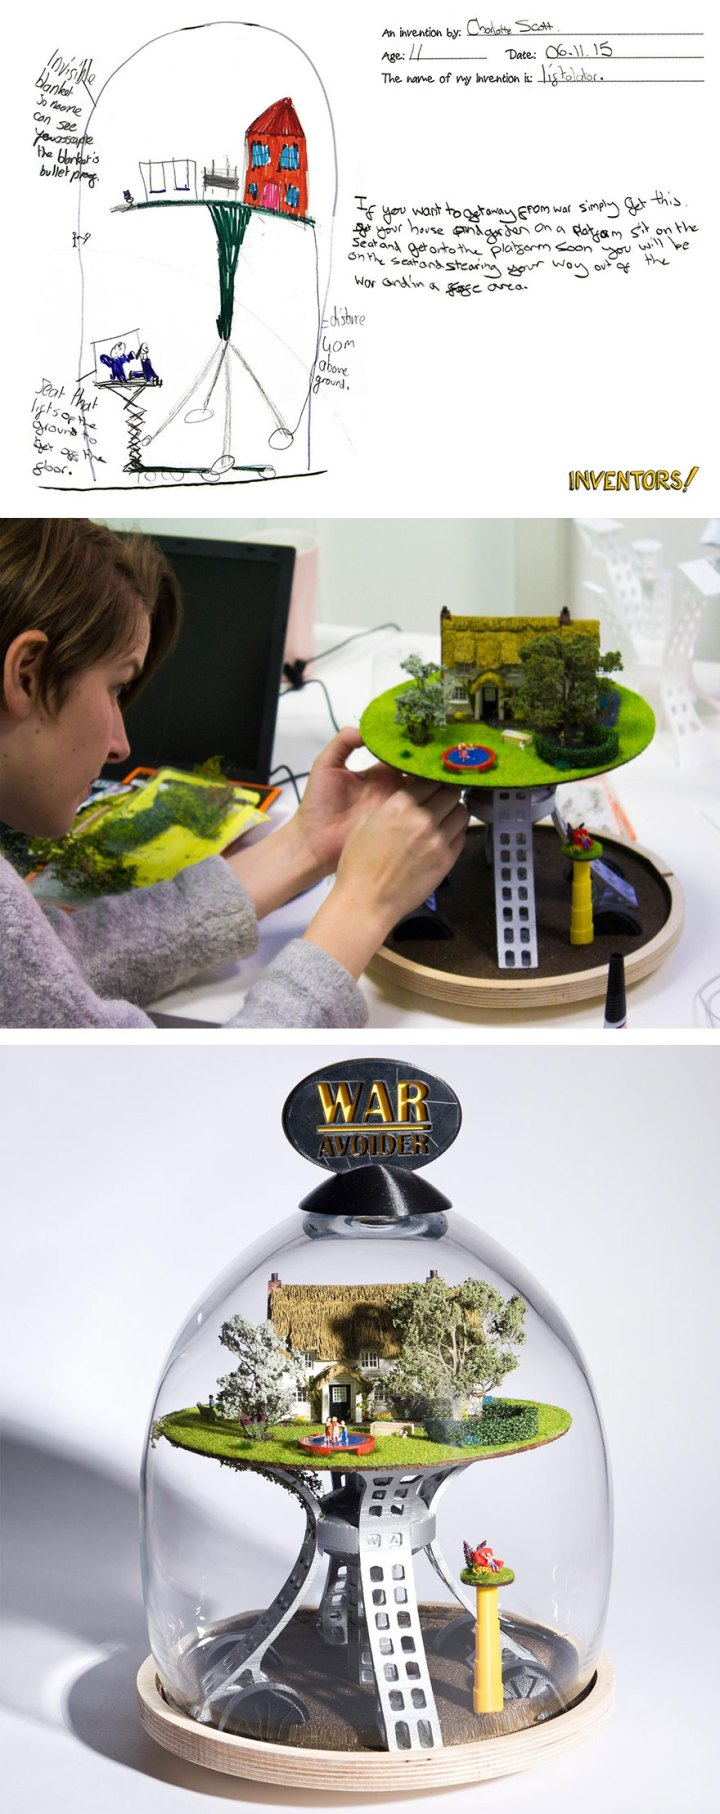 kids-inventions-turned-into-reality-inventors-project-dominic-wilcox-74__880